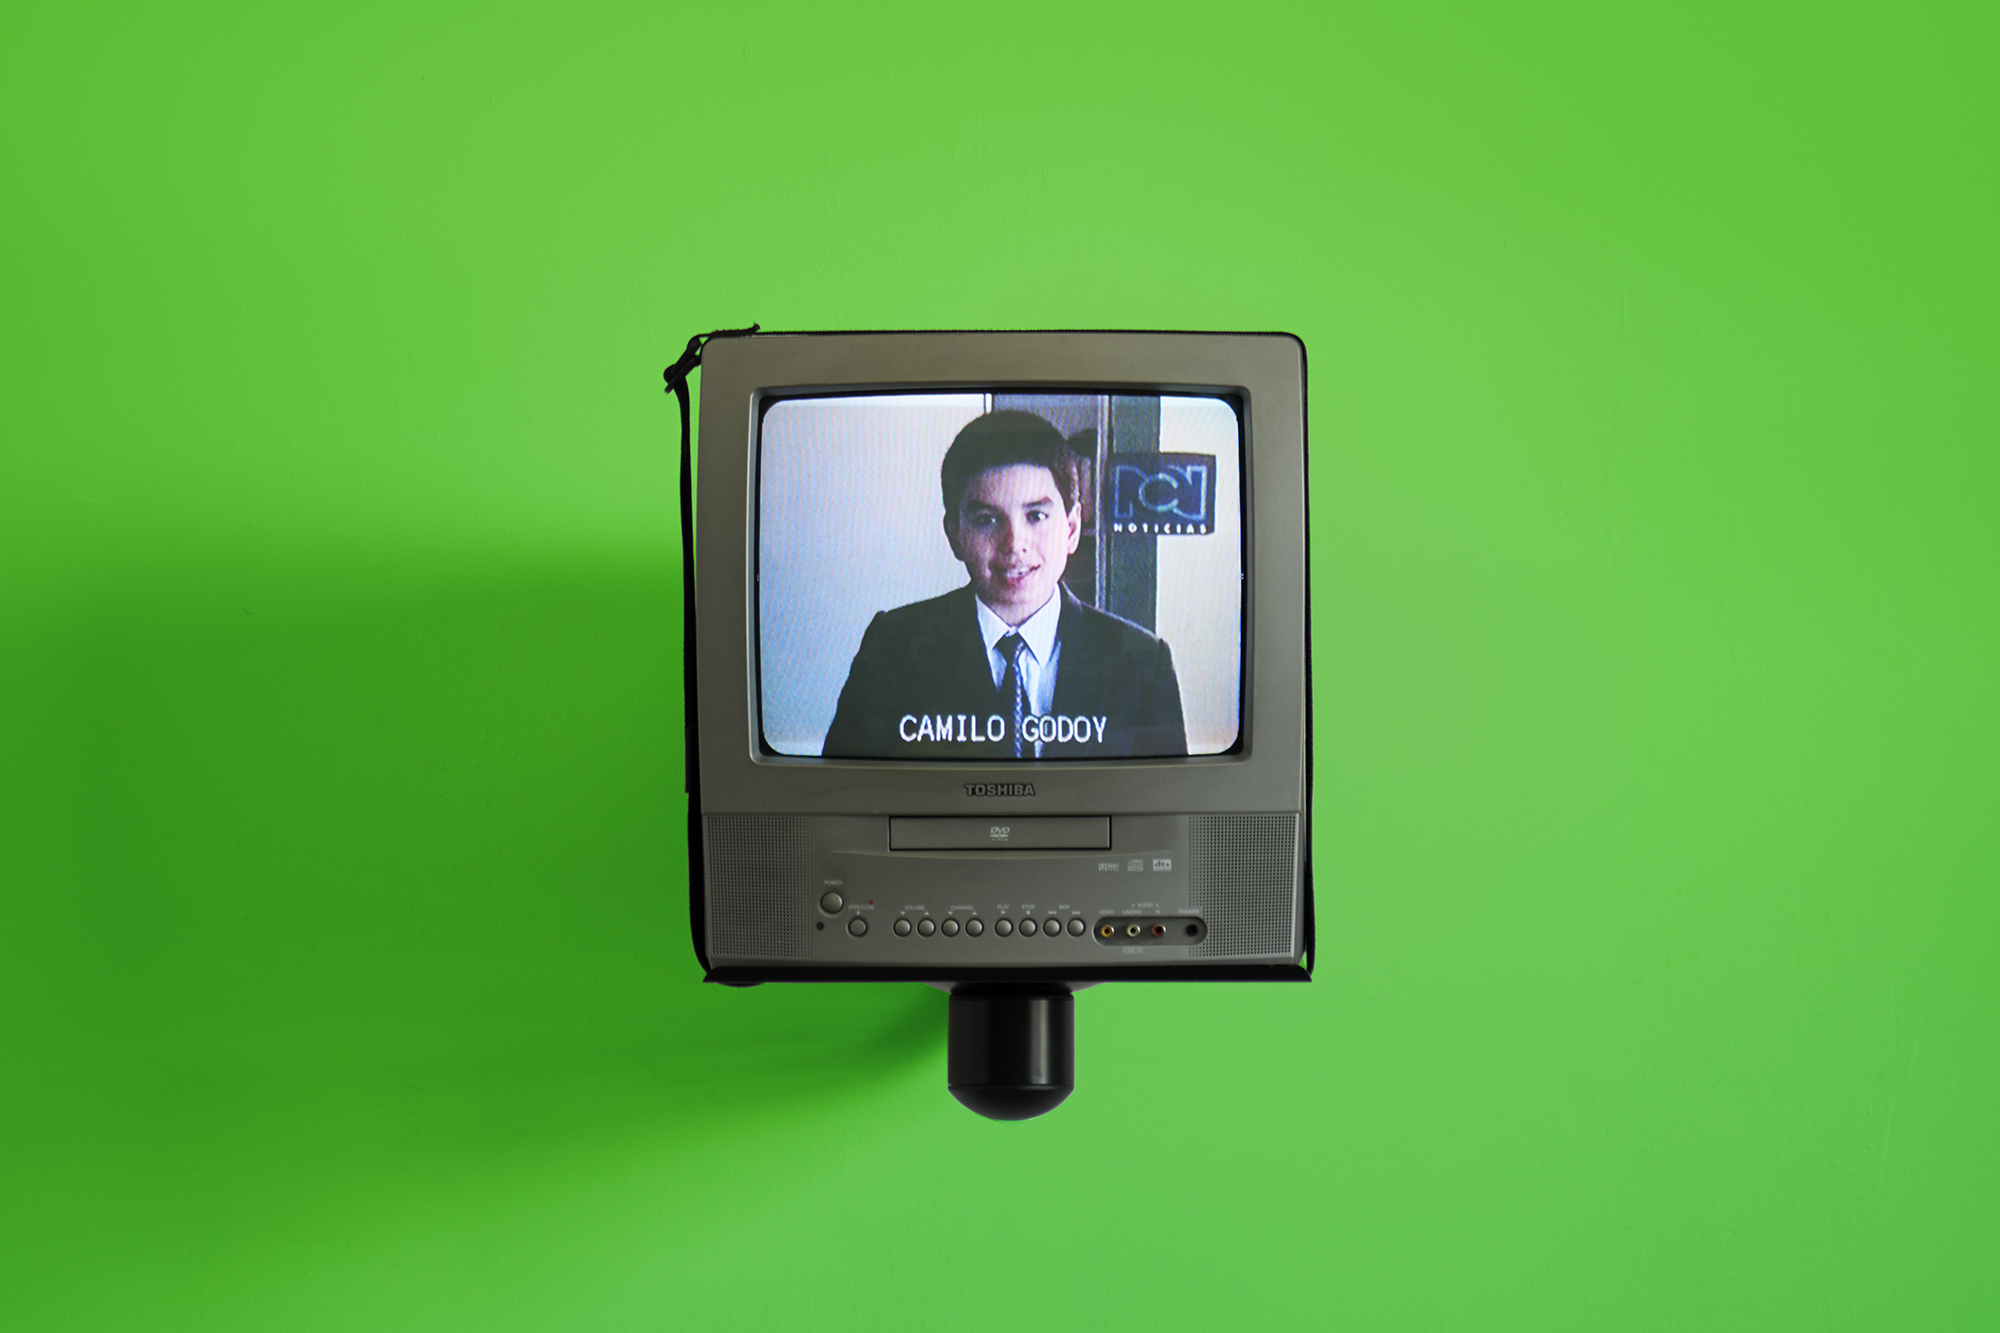 Camilo Godoy,  Noticiero  (installation view), 2002/2017. Video, sound, CRT television set, wall mount, chroma green screen wall, 10-minute loop.